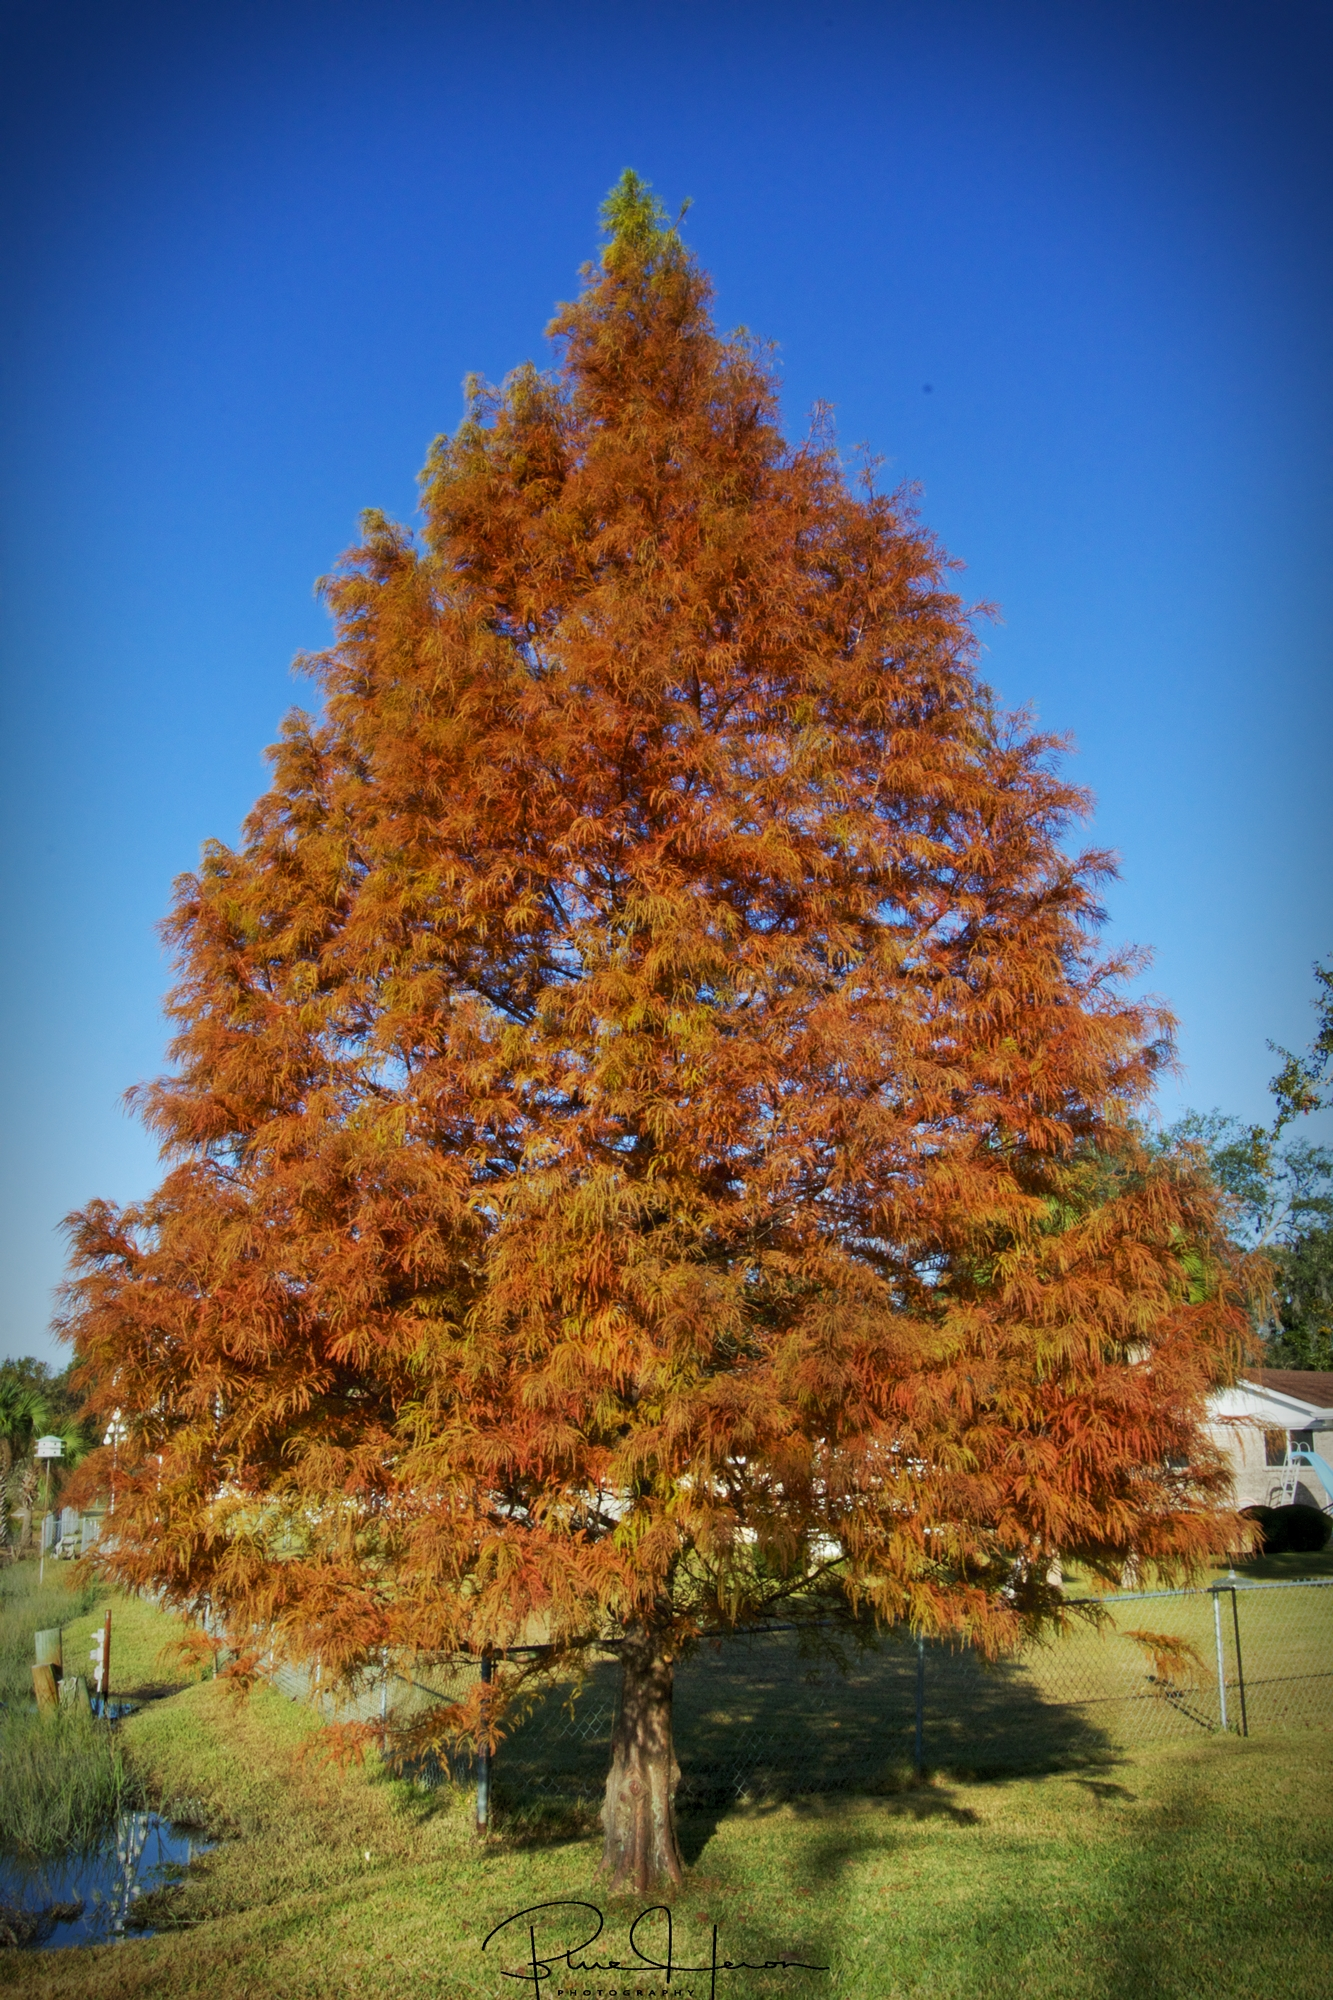 """This is my fall colors on the Broward, a Bald Cyprus tree we planted called """"The General""""    It grew from about a 3 ft sapling to over 20 feet tall now."""